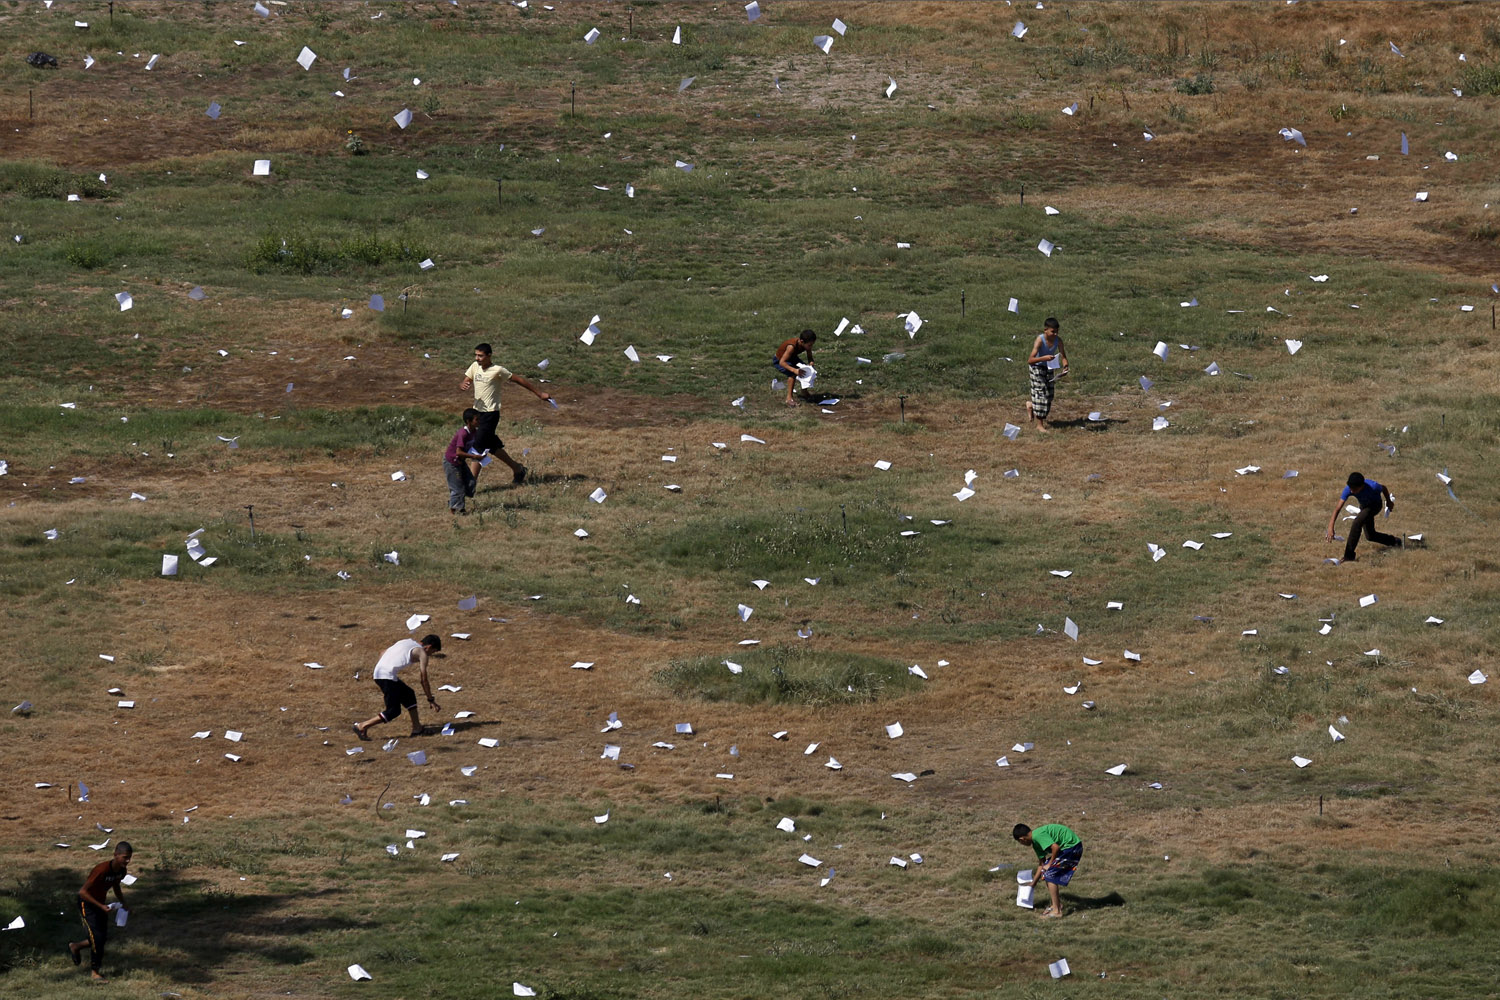 Jul. 30, 2014. Palestinians gather leaflets that fell from an Israeli plane warning residents in Gaza City to stay away from Hamas militants and to report possible rocket launches.